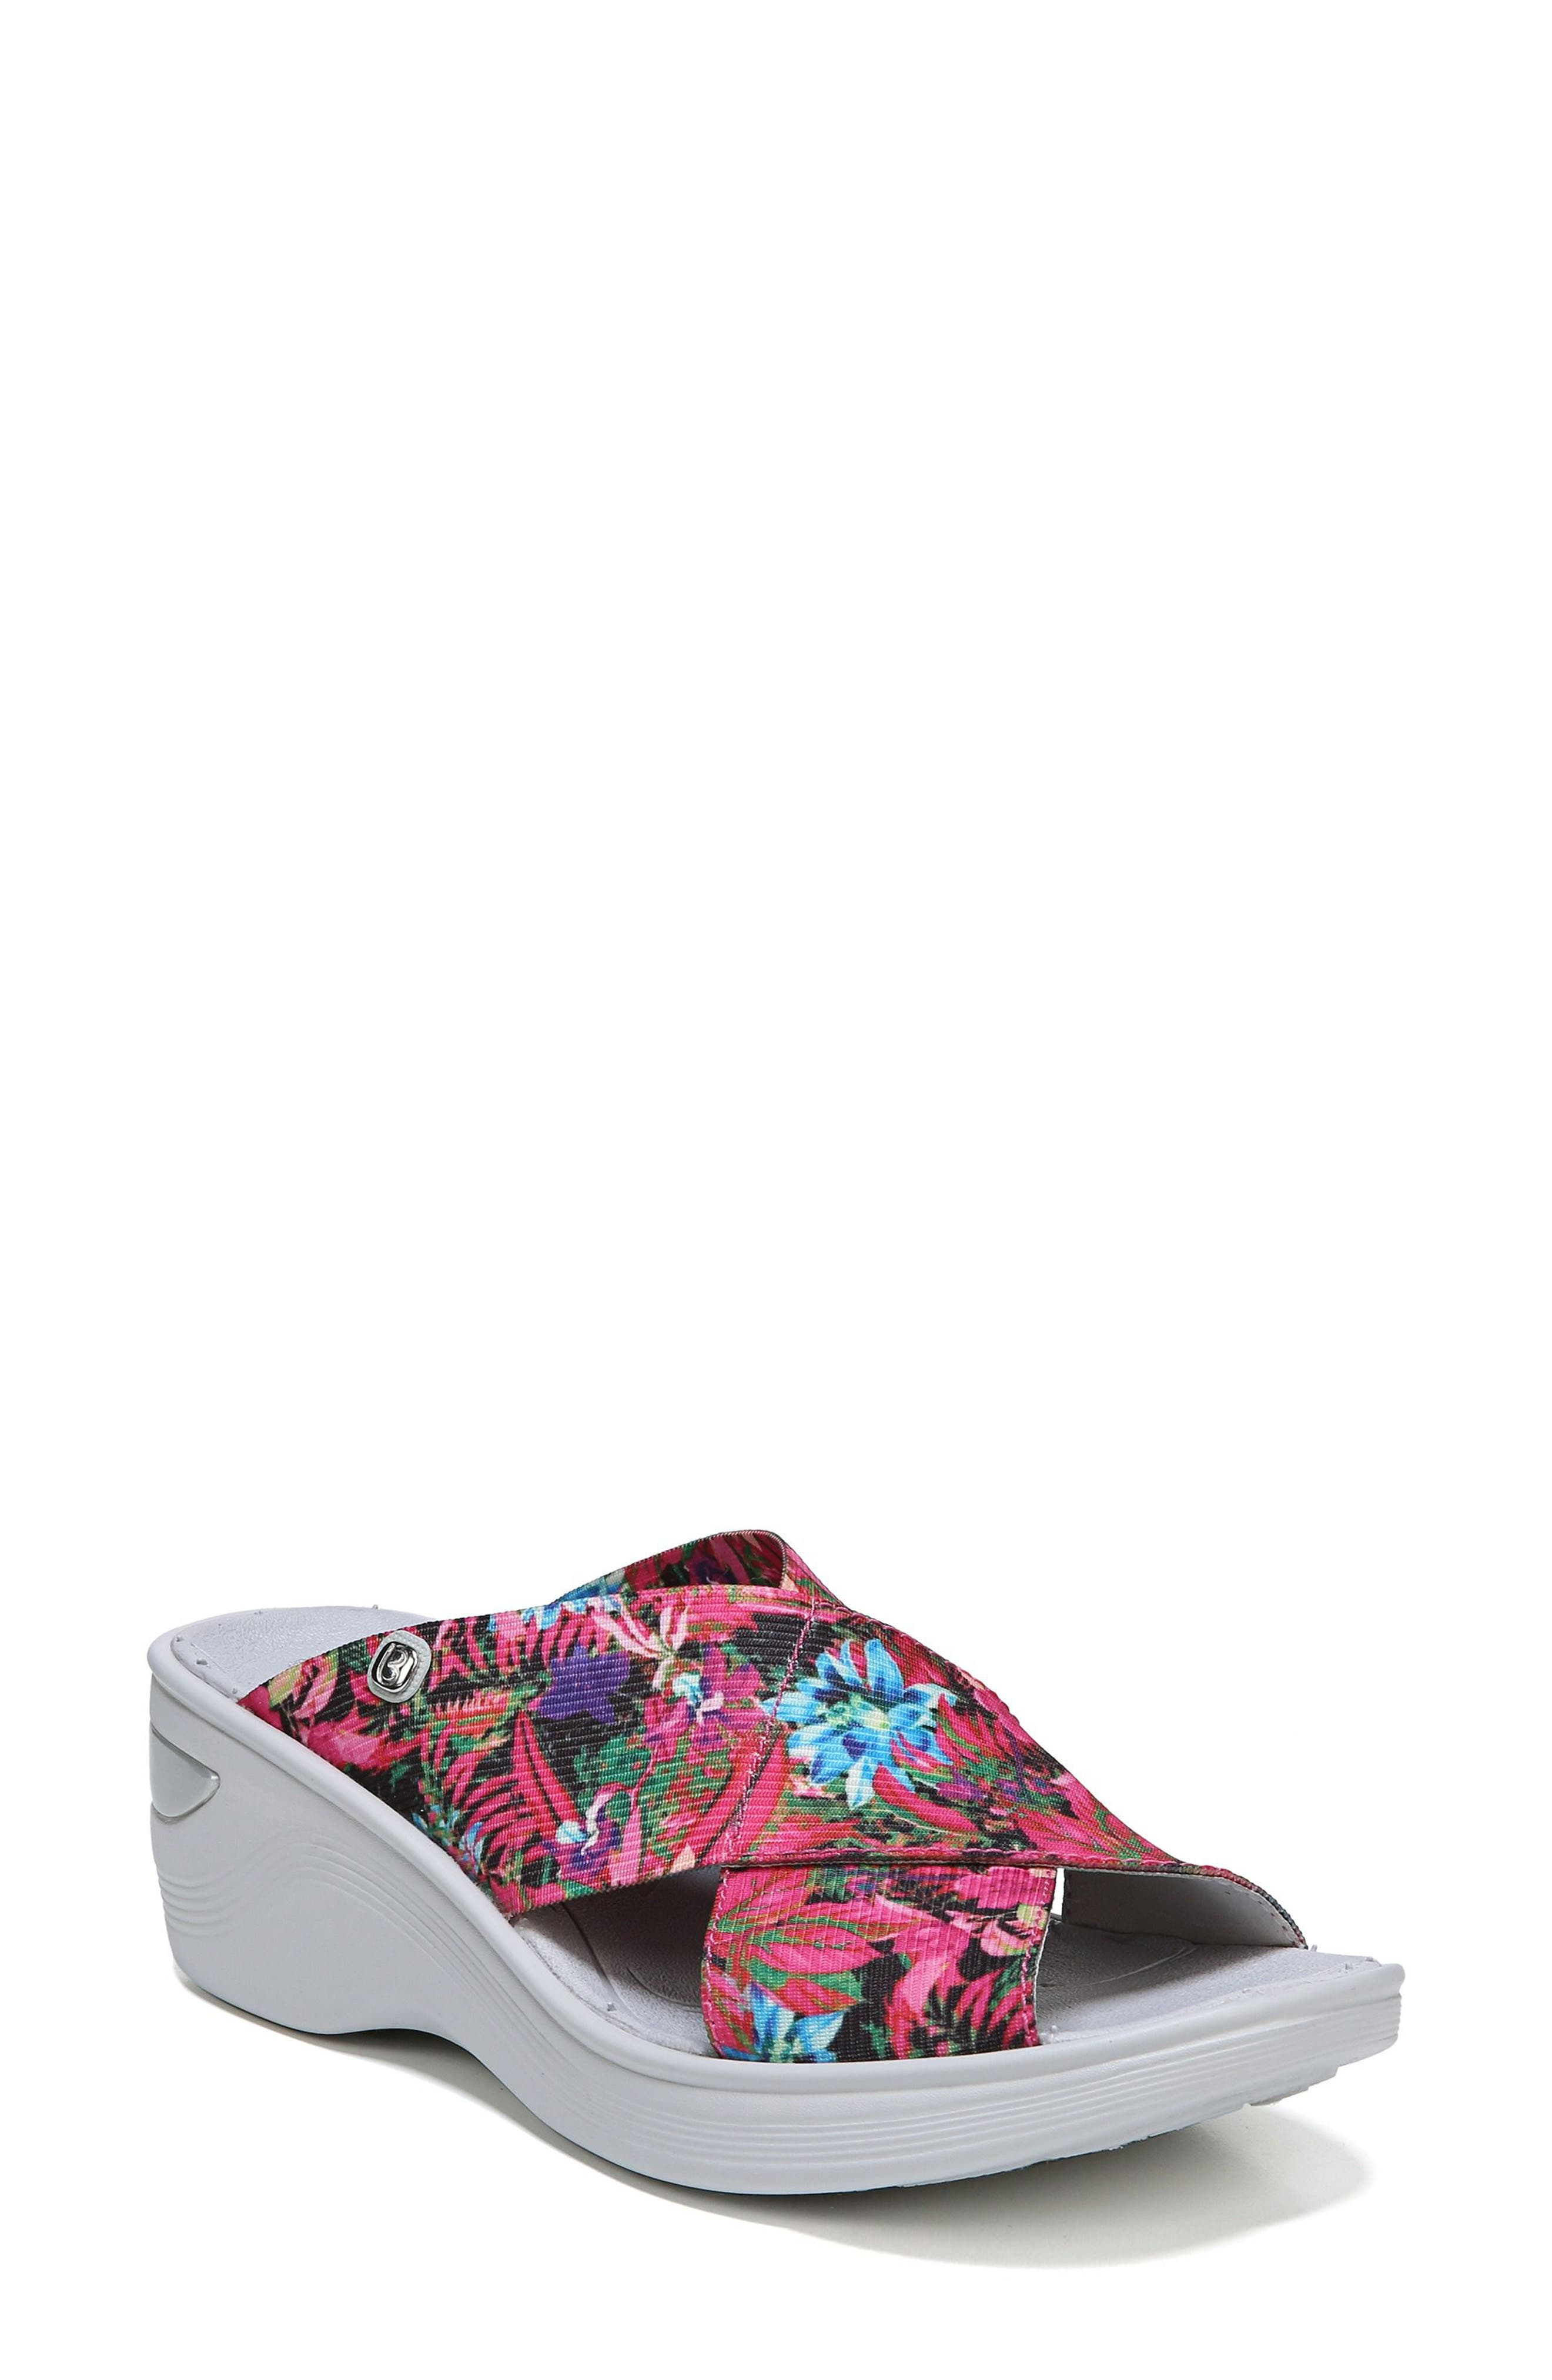 'Desire' Wedge Sandal,                             Main thumbnail 1, color,                             Pink Floral Fabric